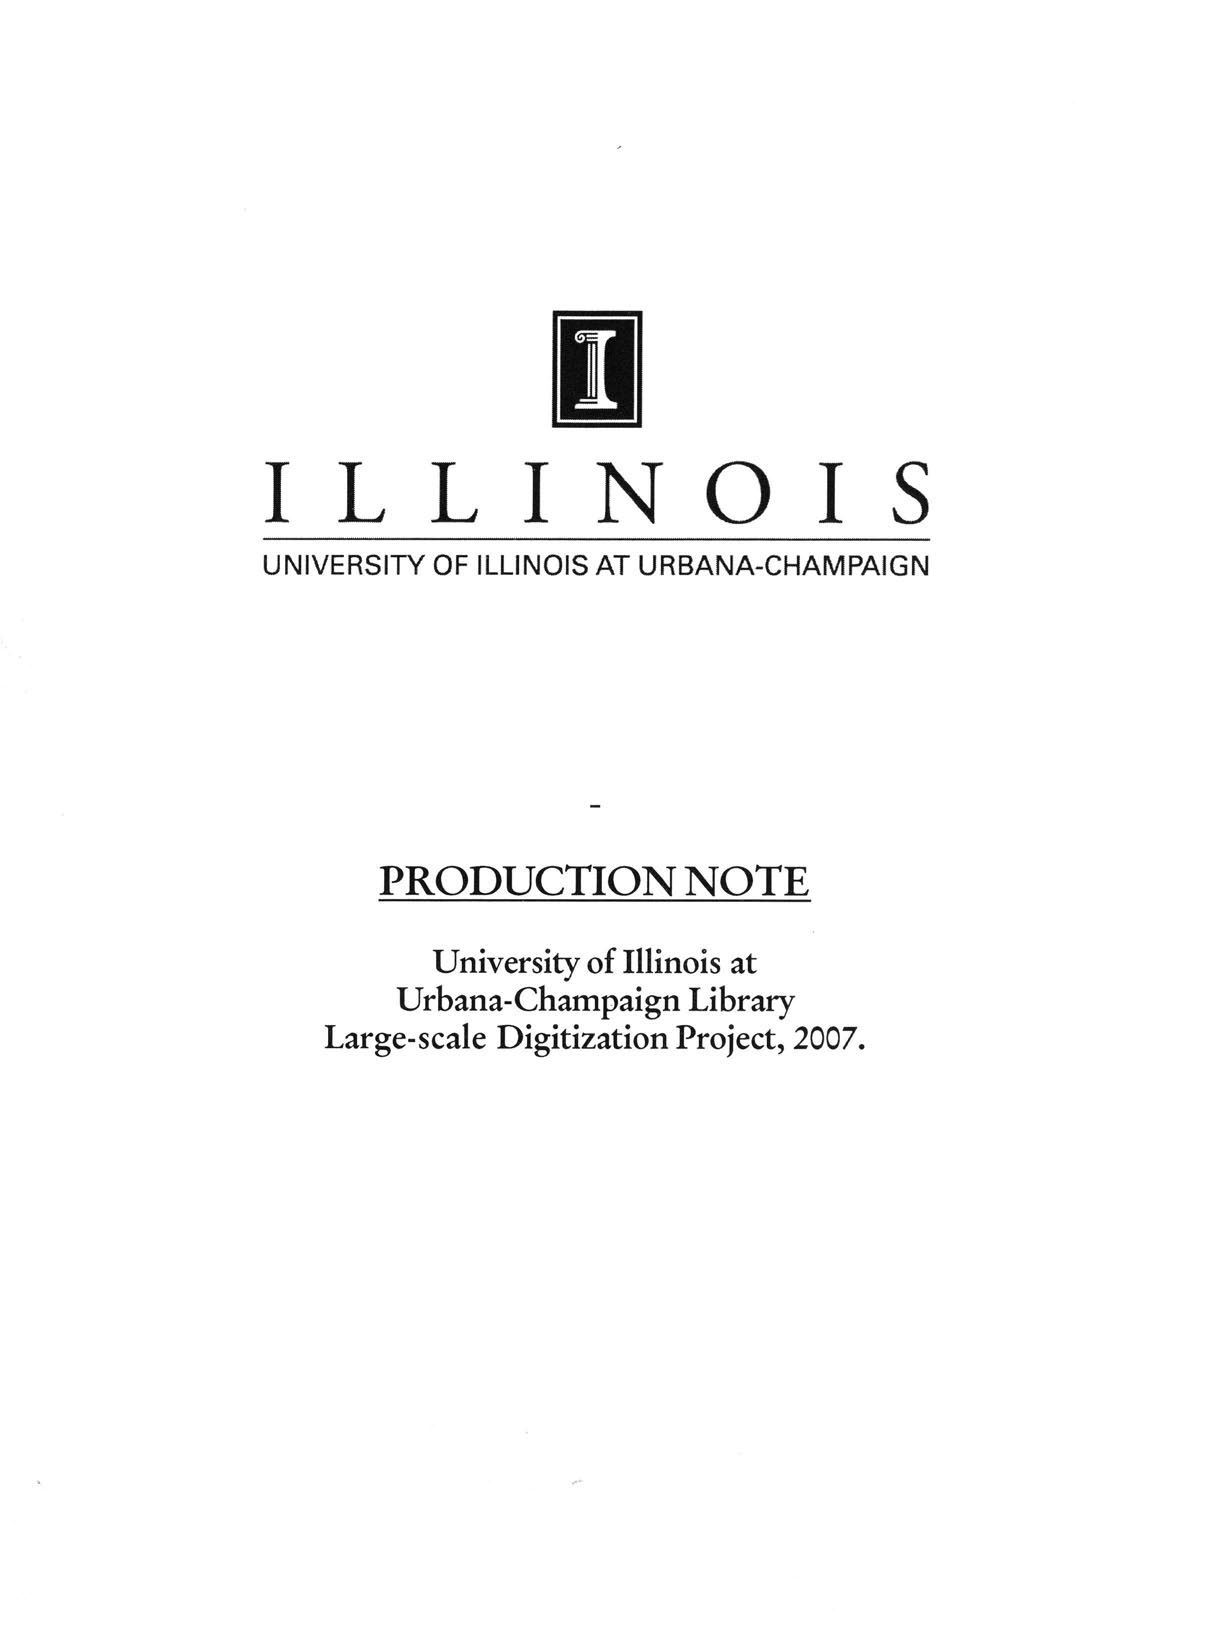 I LLINOI S UNIVERSITY OF ILLINOIS AT URBANA-CHAMPAIGN PRODUCTION NOTE